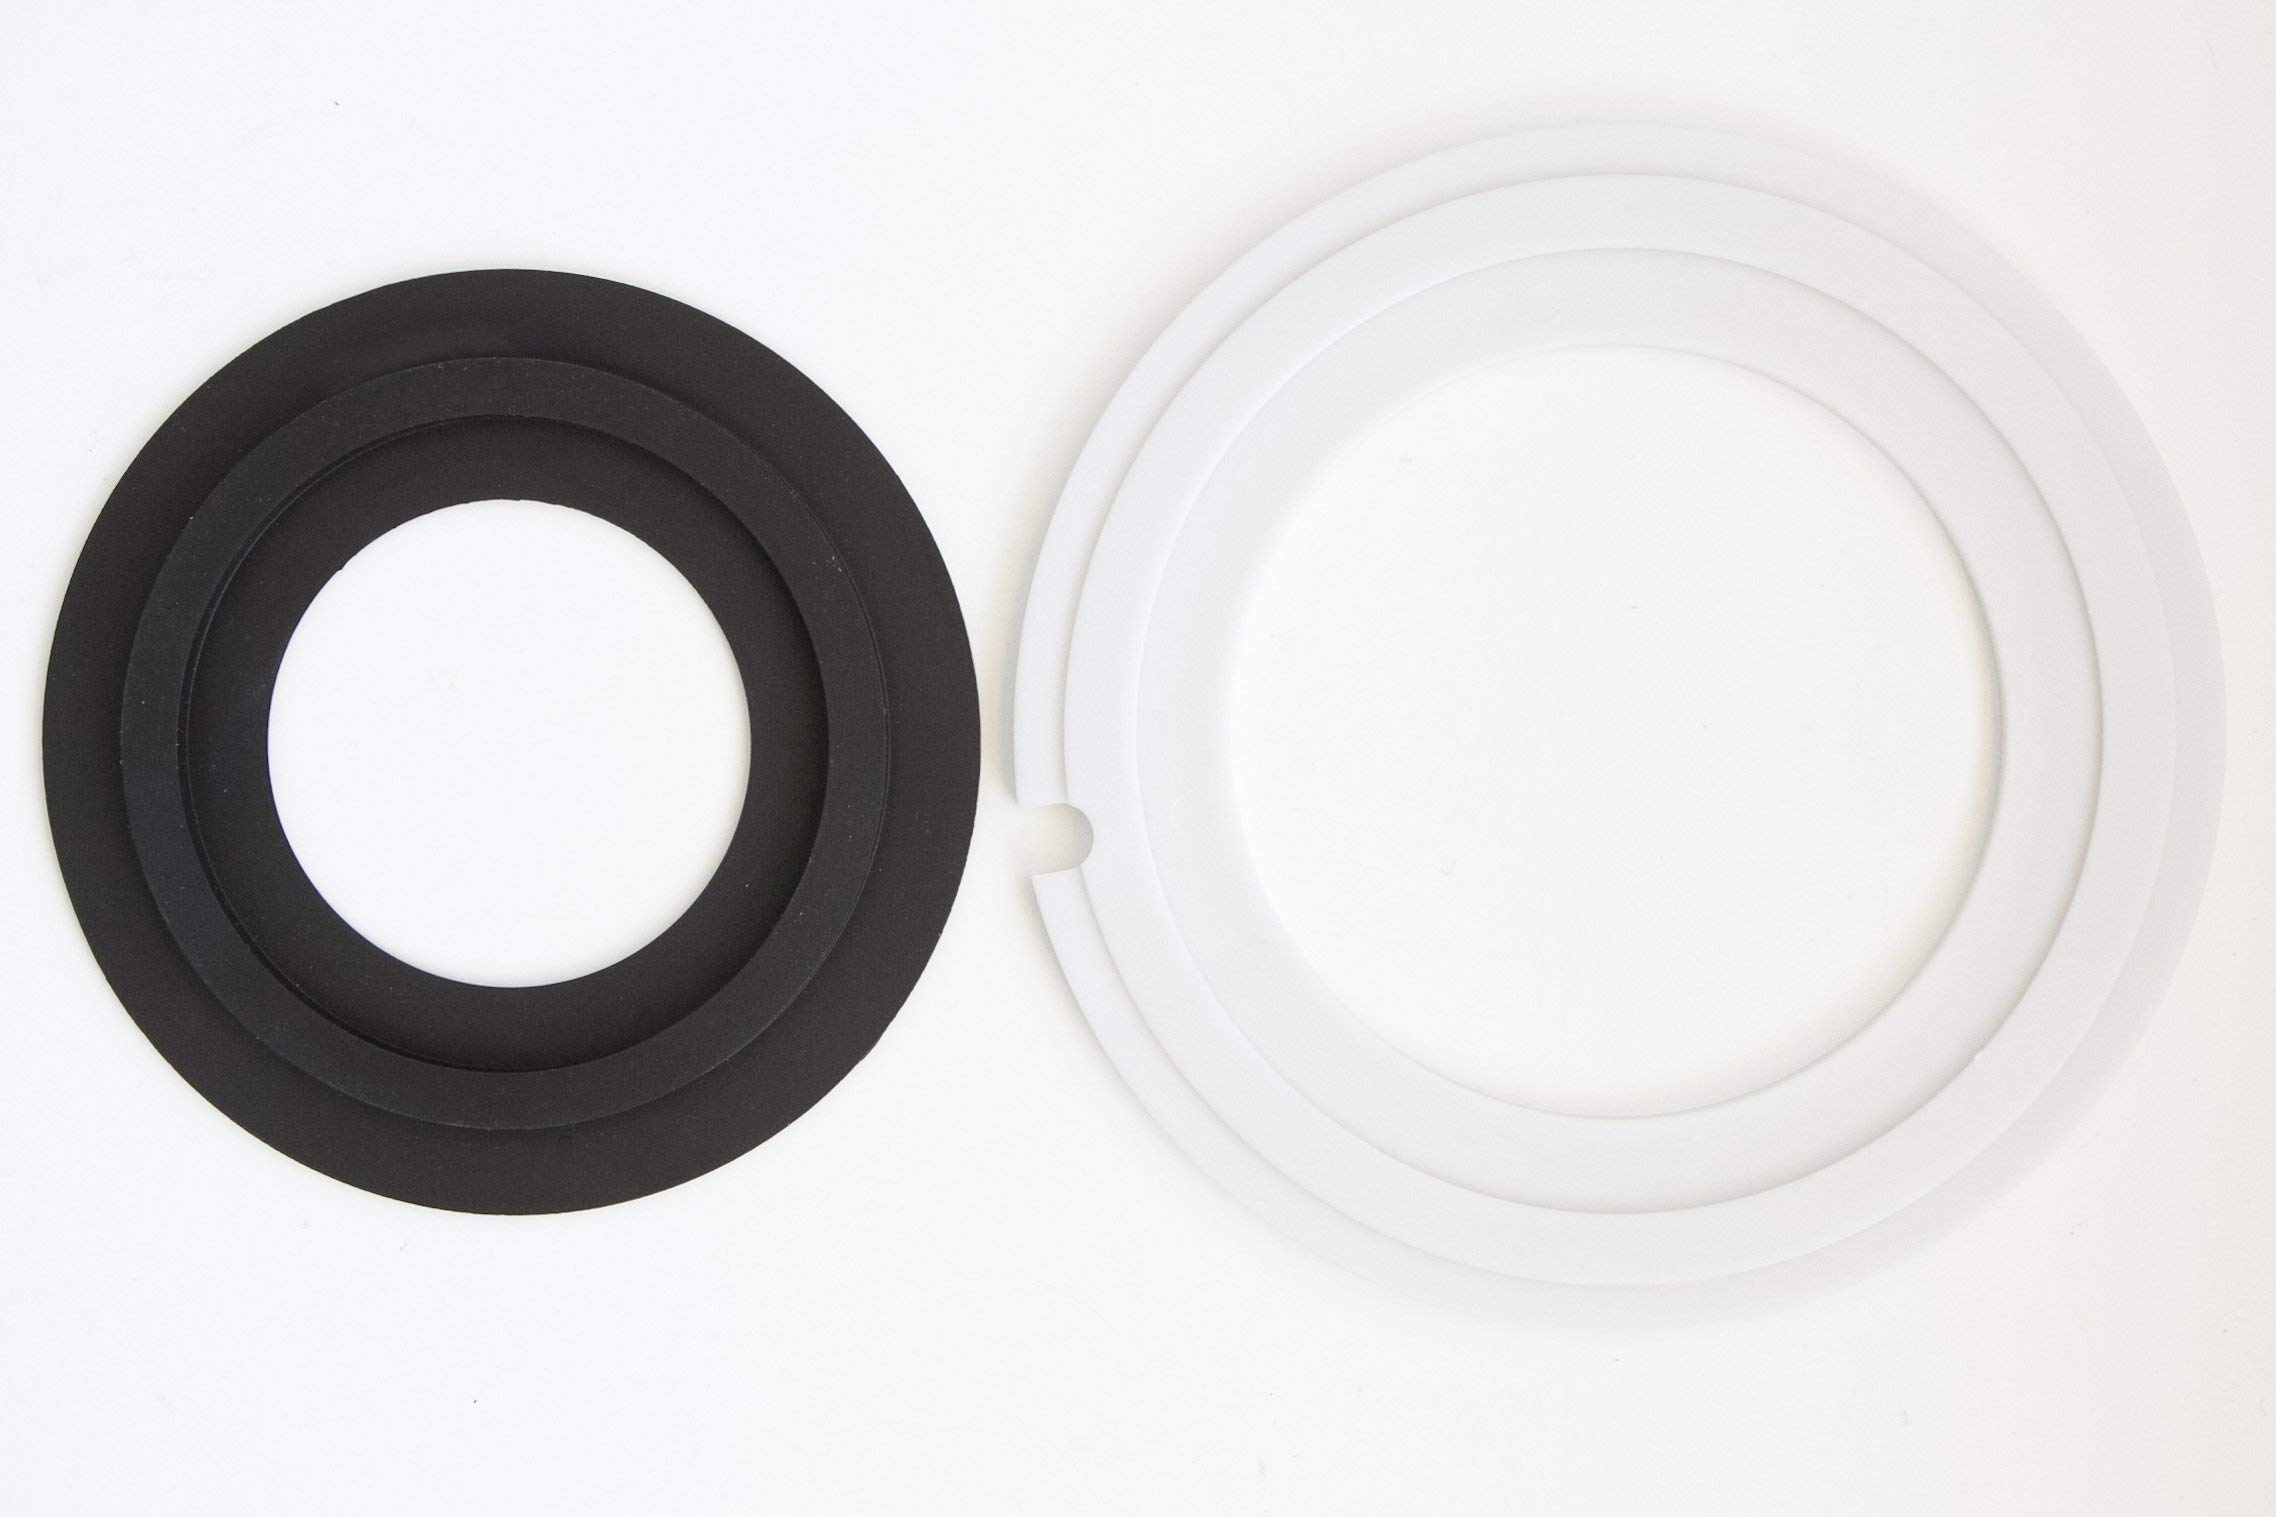 Replacement for Dometic 385311462, 385310677 Improved RV toilet seal kit. (Without overflow holes) by Spray Quick